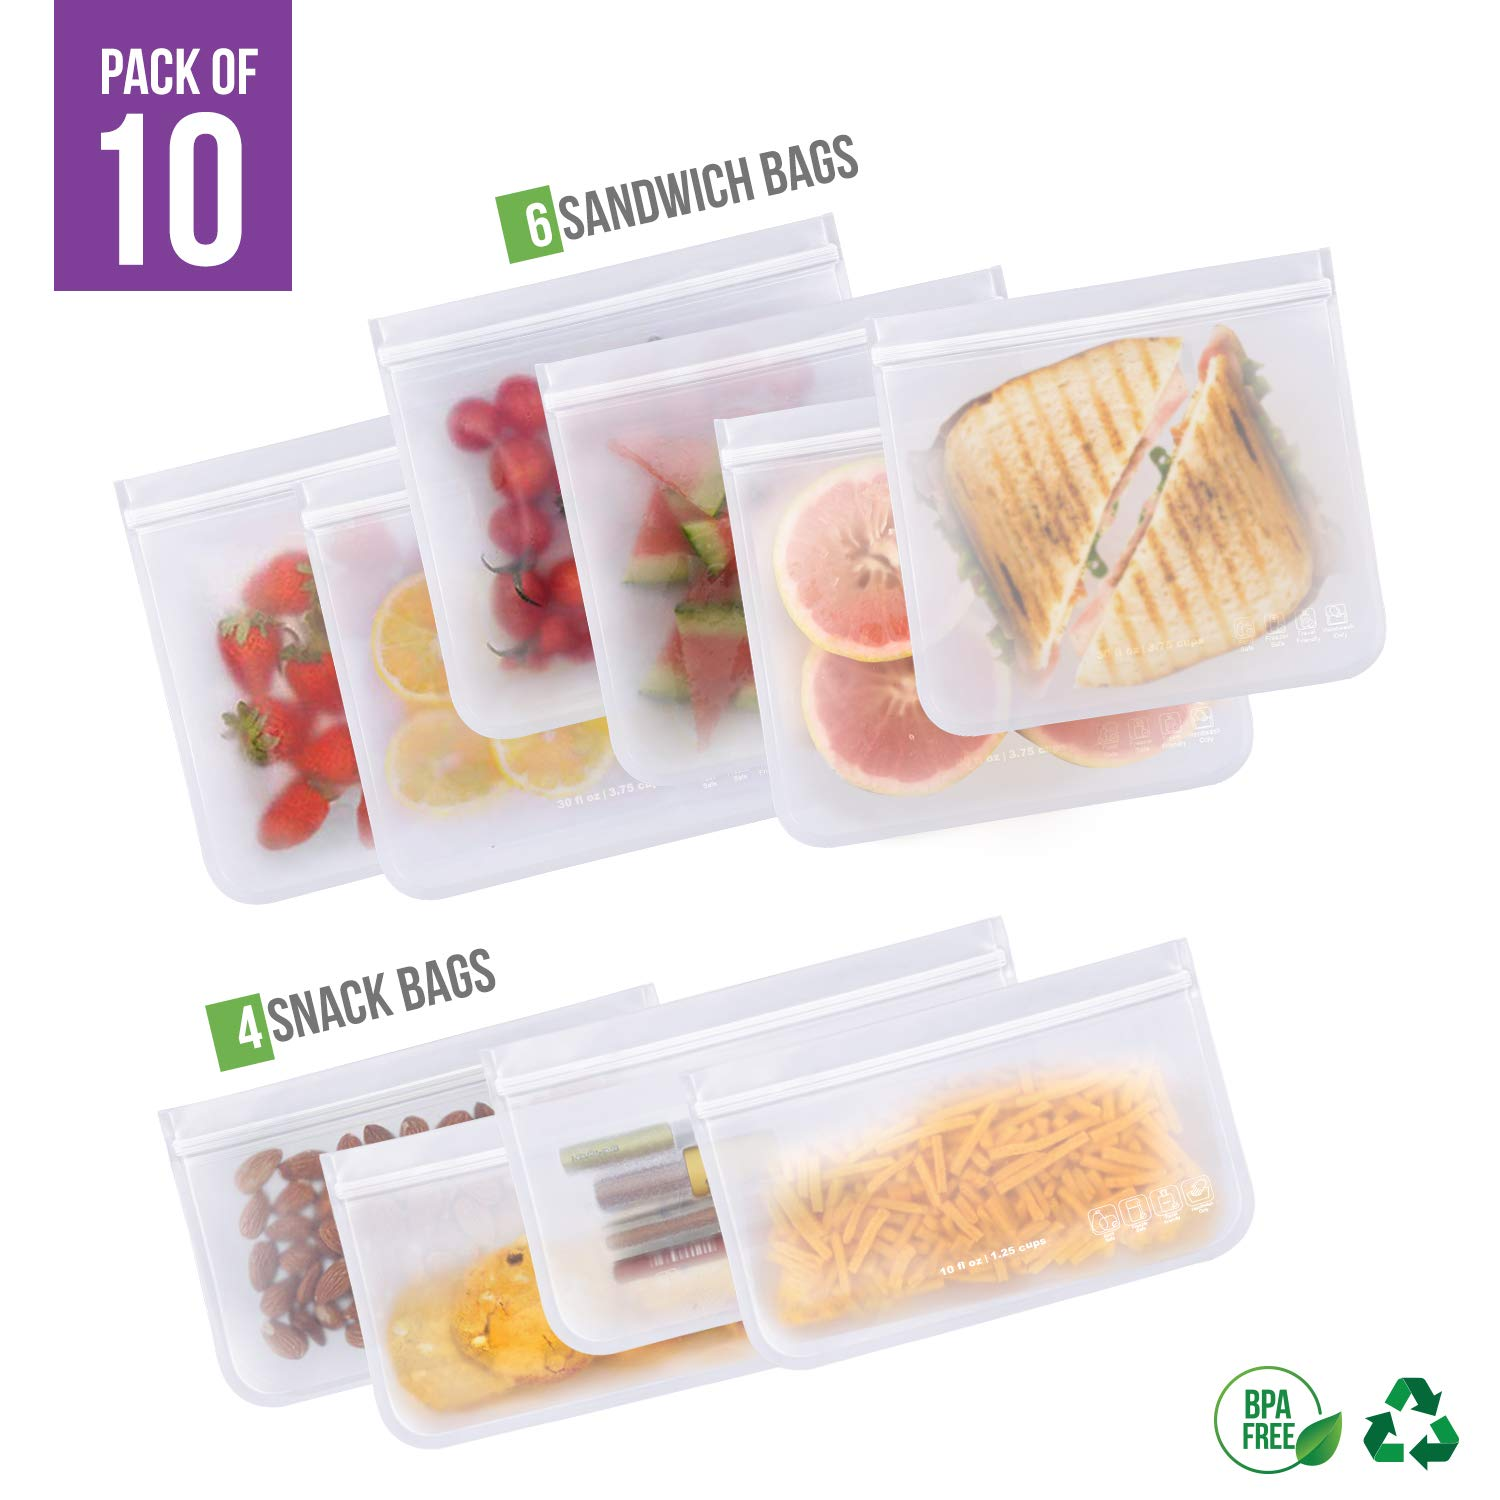 Reusable Sandwich Bags 10 Pack, BPA FREE Freezer Bags (6 Large Reusable Sandwich Bags + 4 THICK Reusable Snack Bags) Ziplock Leakproof Lunch Bags for Food Liquid Travel Items and Home Organization